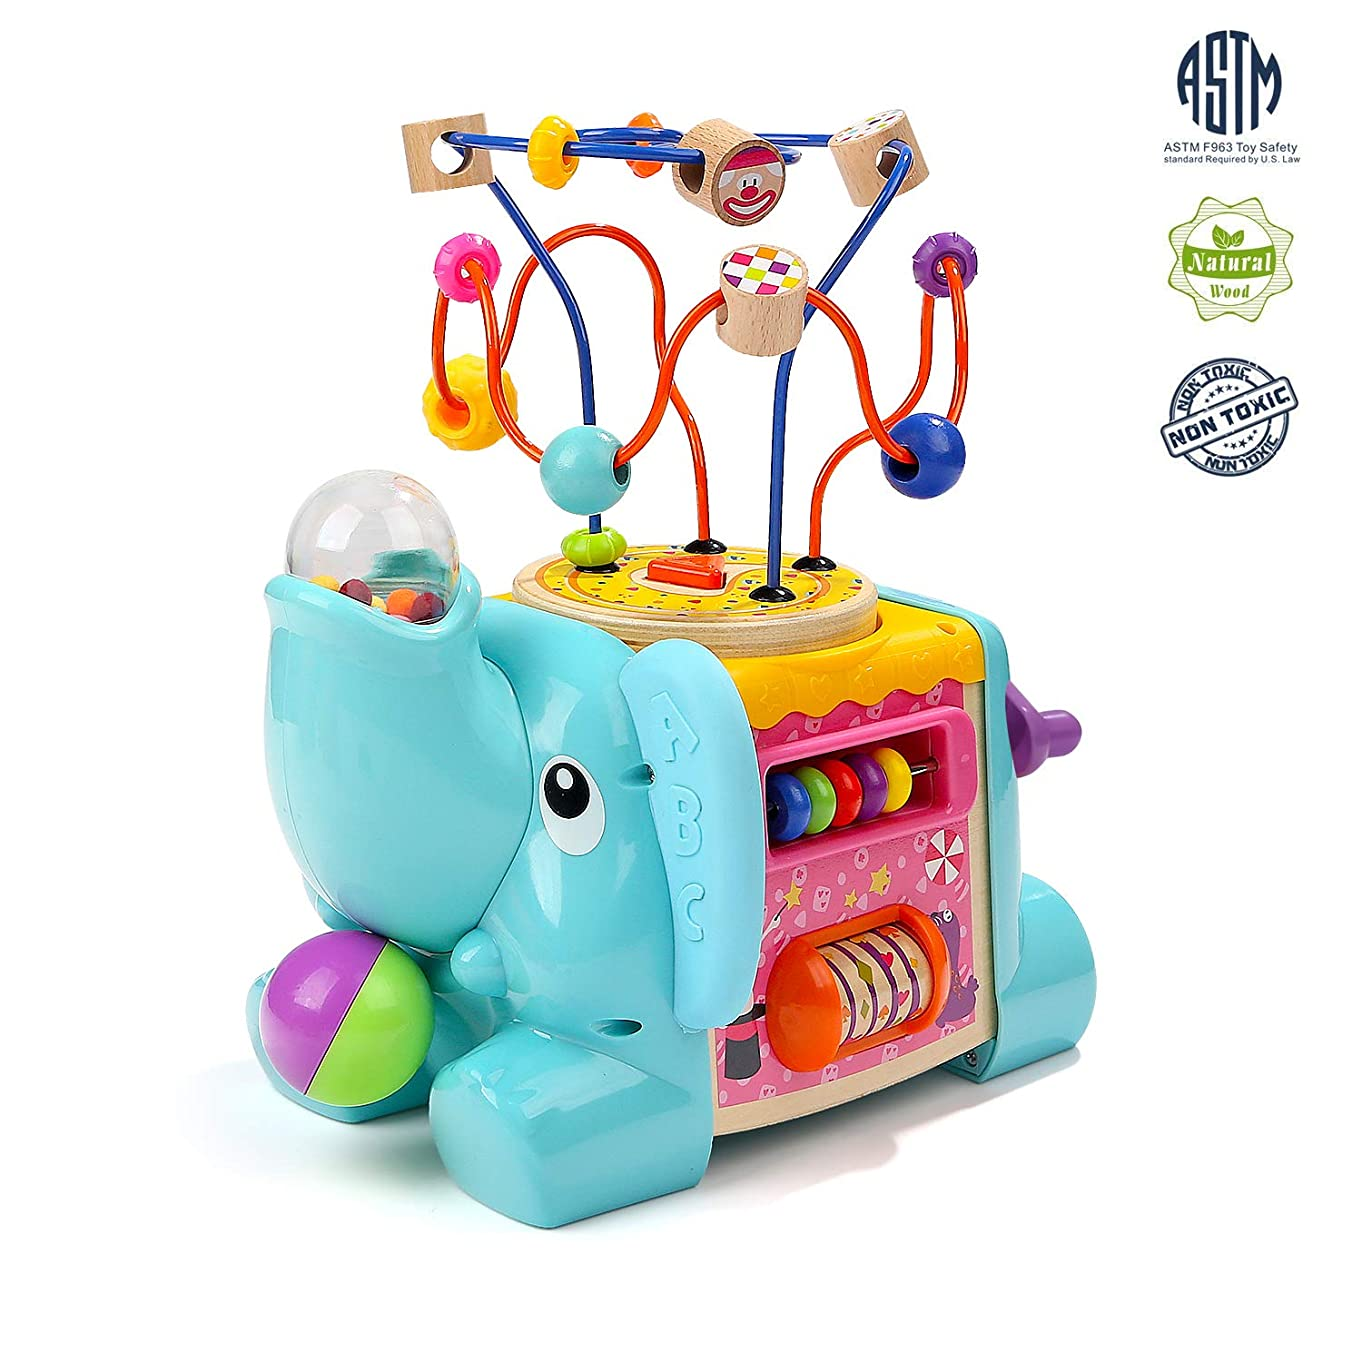 TOP BRIGHT Activity Cube Toys - Educational Baby Toys with Bead Maze for Toddlers 1 2 Year Old Boy and Girl Gifts